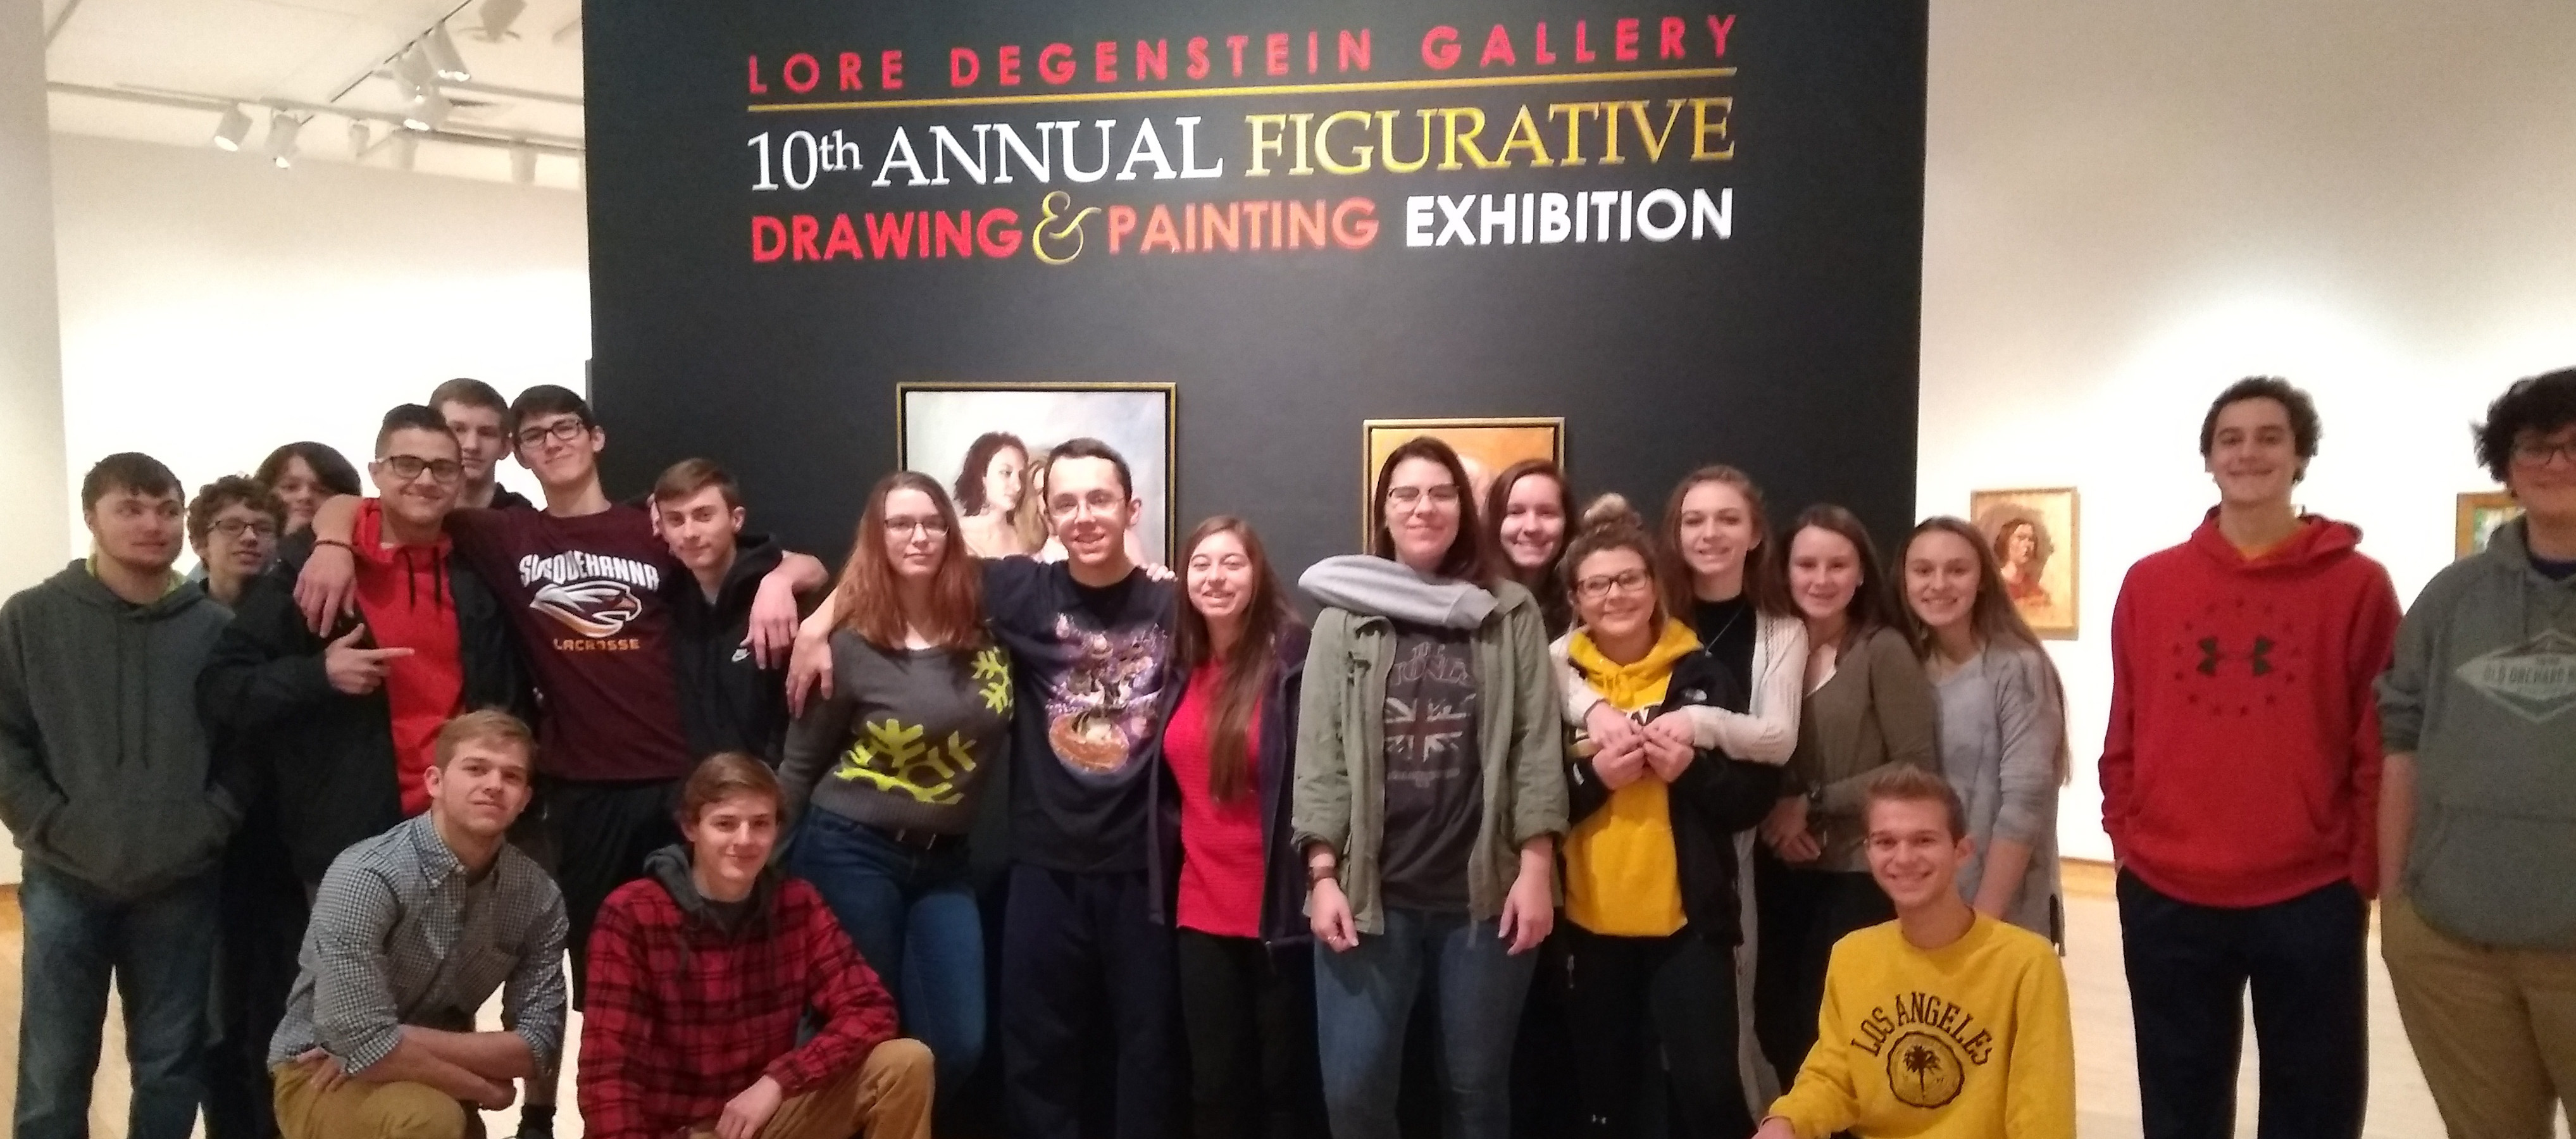 Cristi Nobre da Veiga's students on a field trip to the Susquehanna Art Gallery.